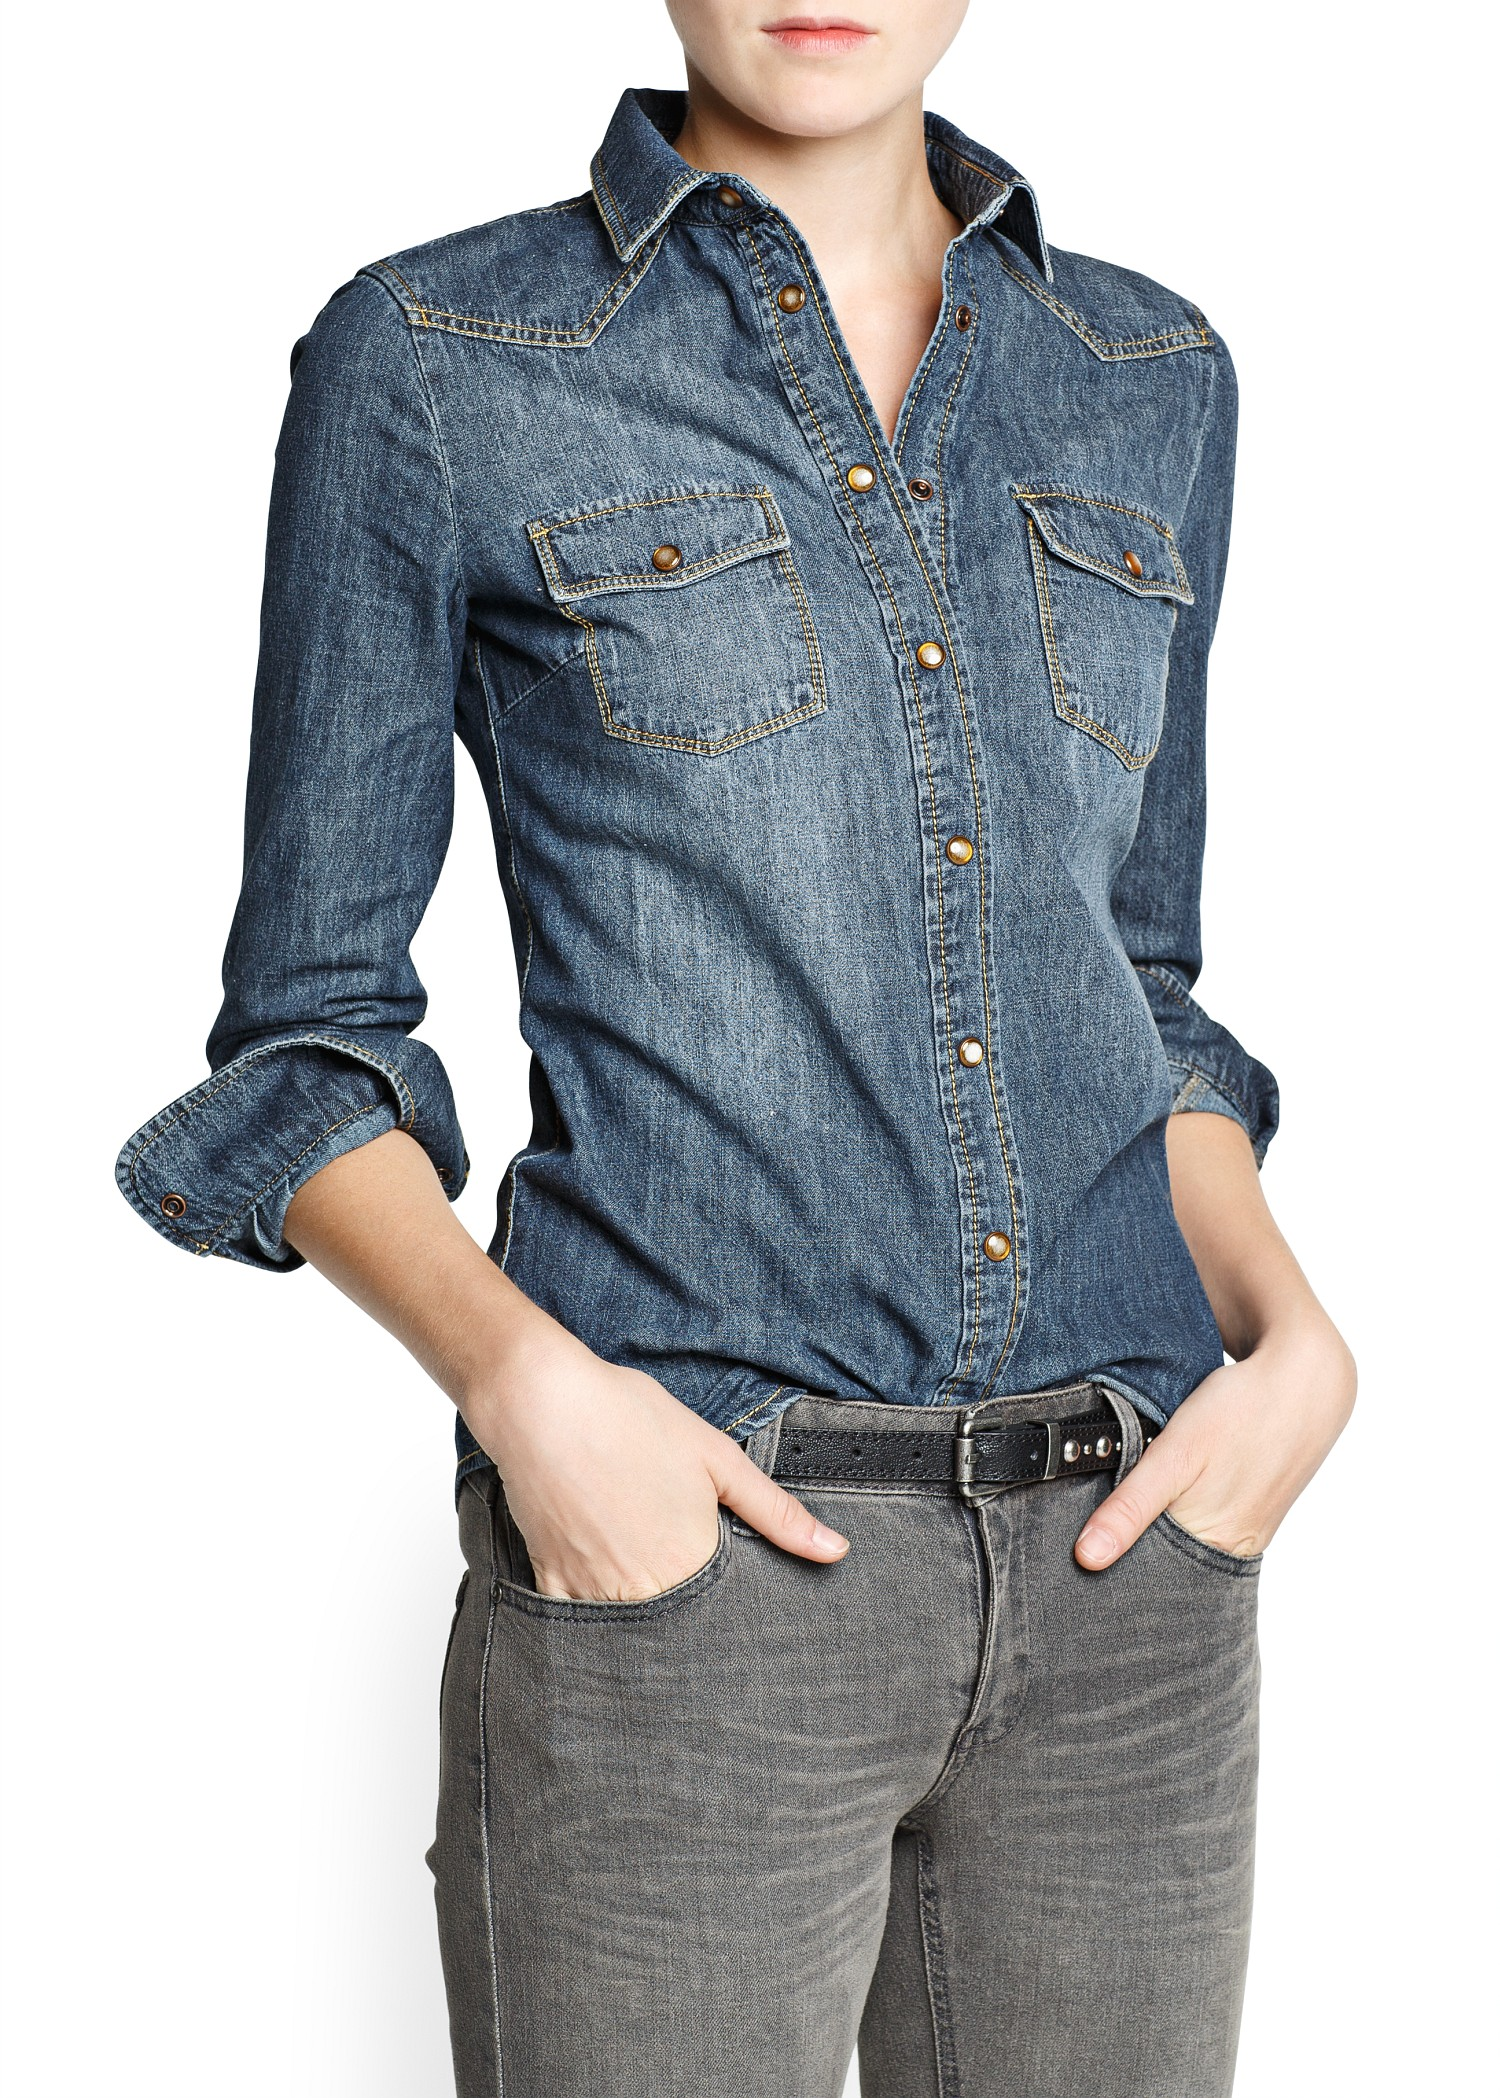 How to Use Denim Shirt